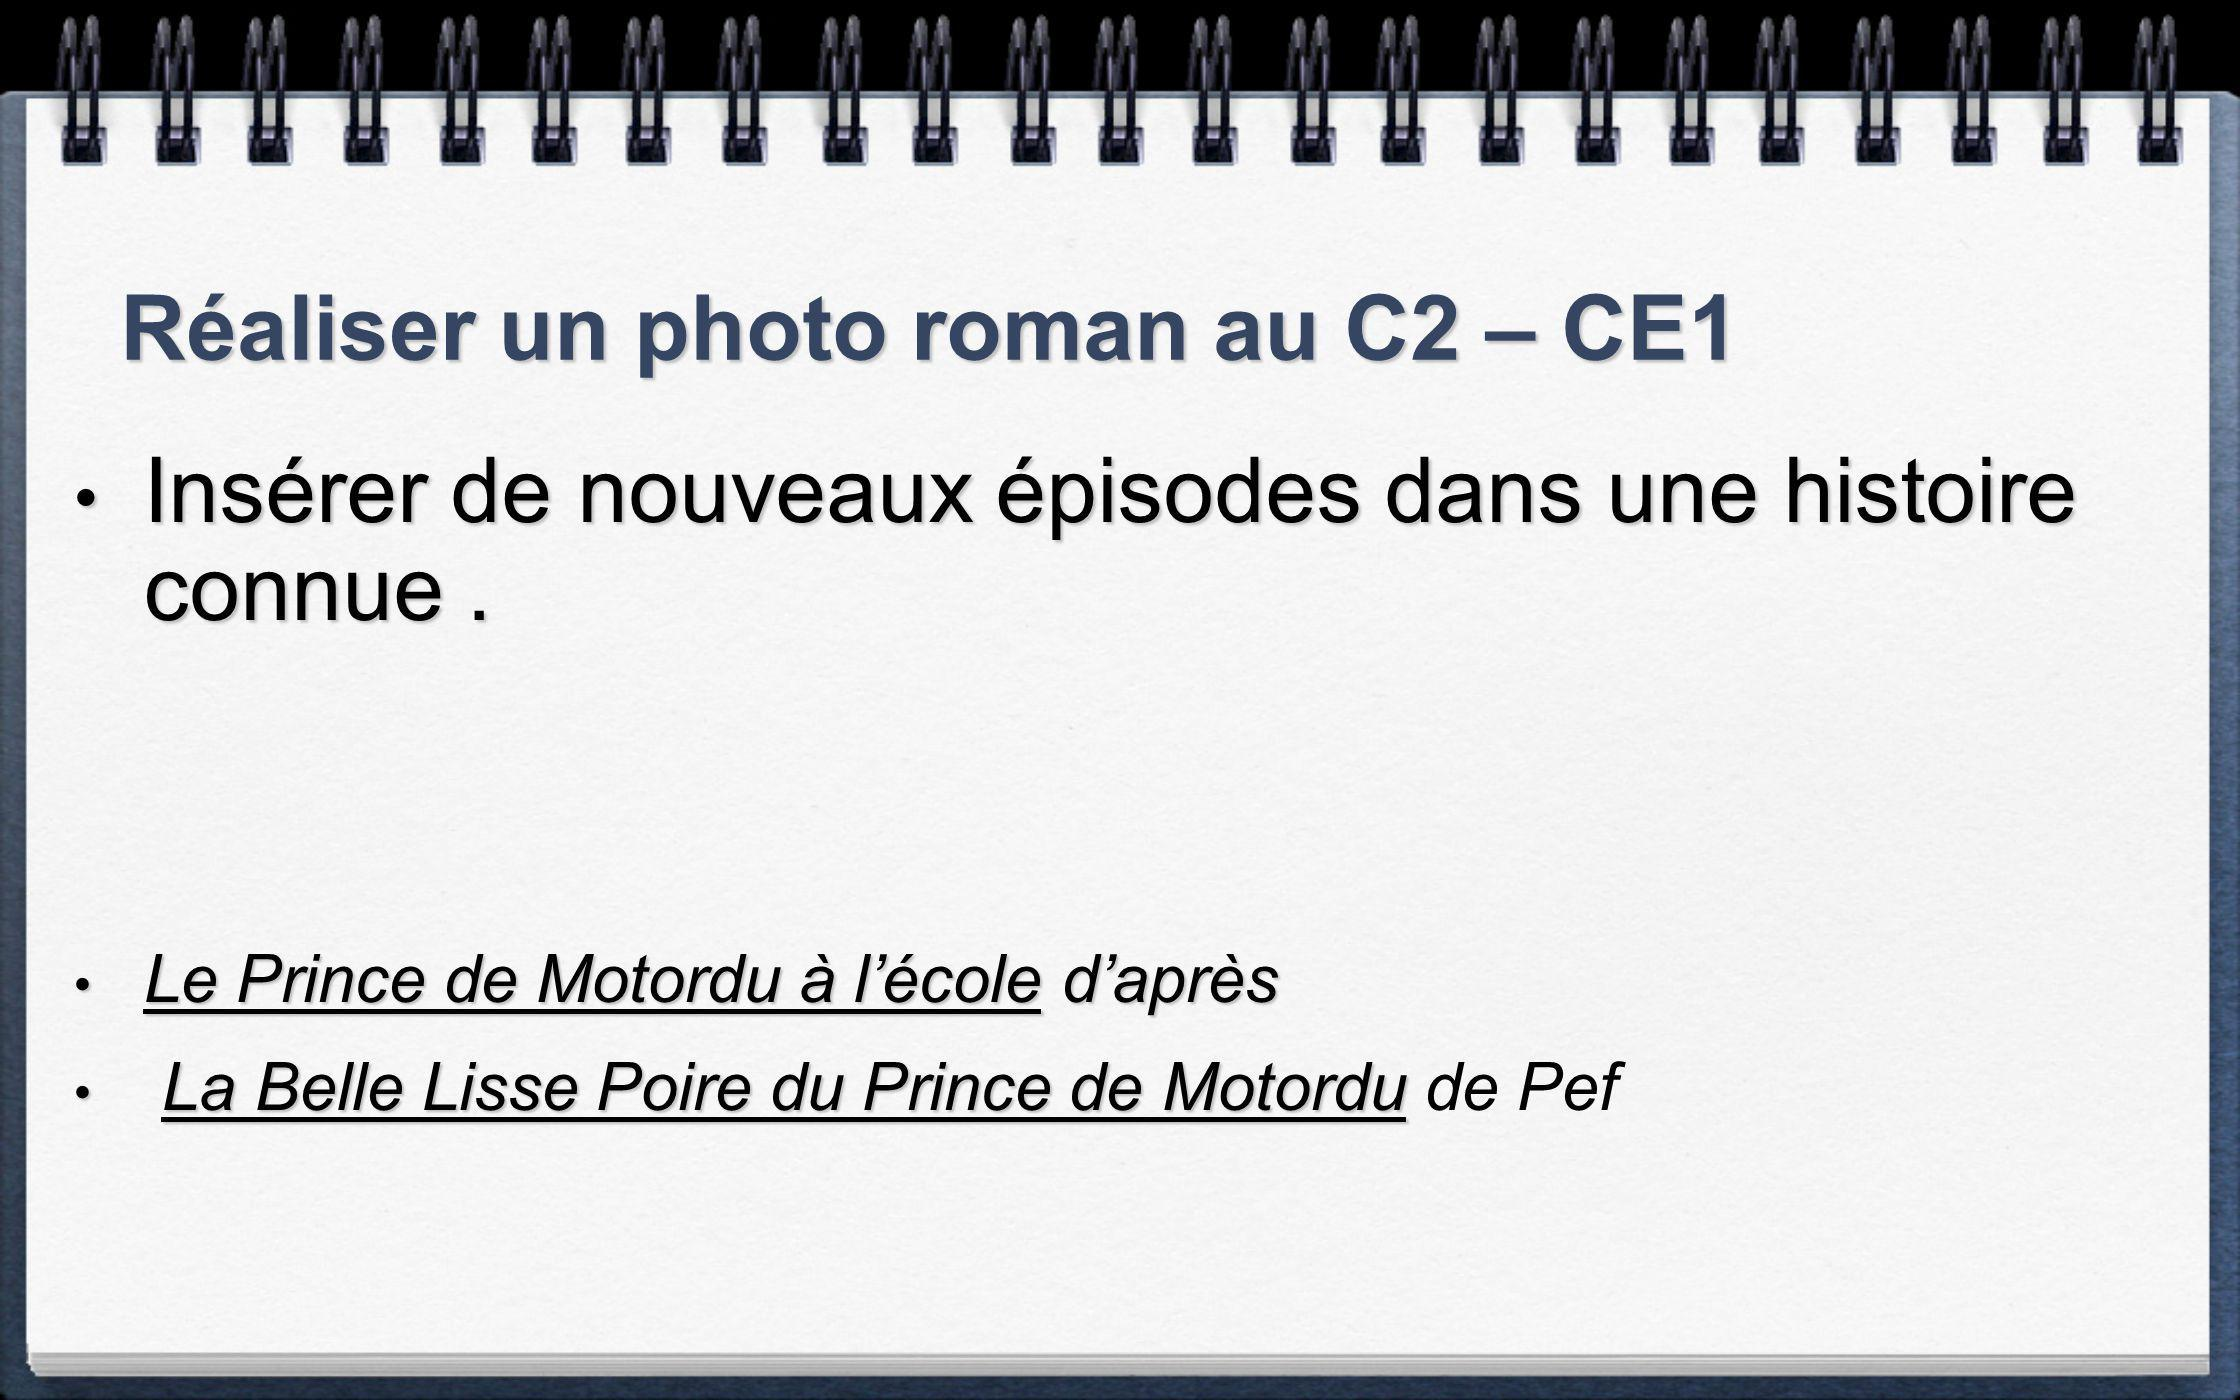 Réaliser un photo roman au C2 – CE1